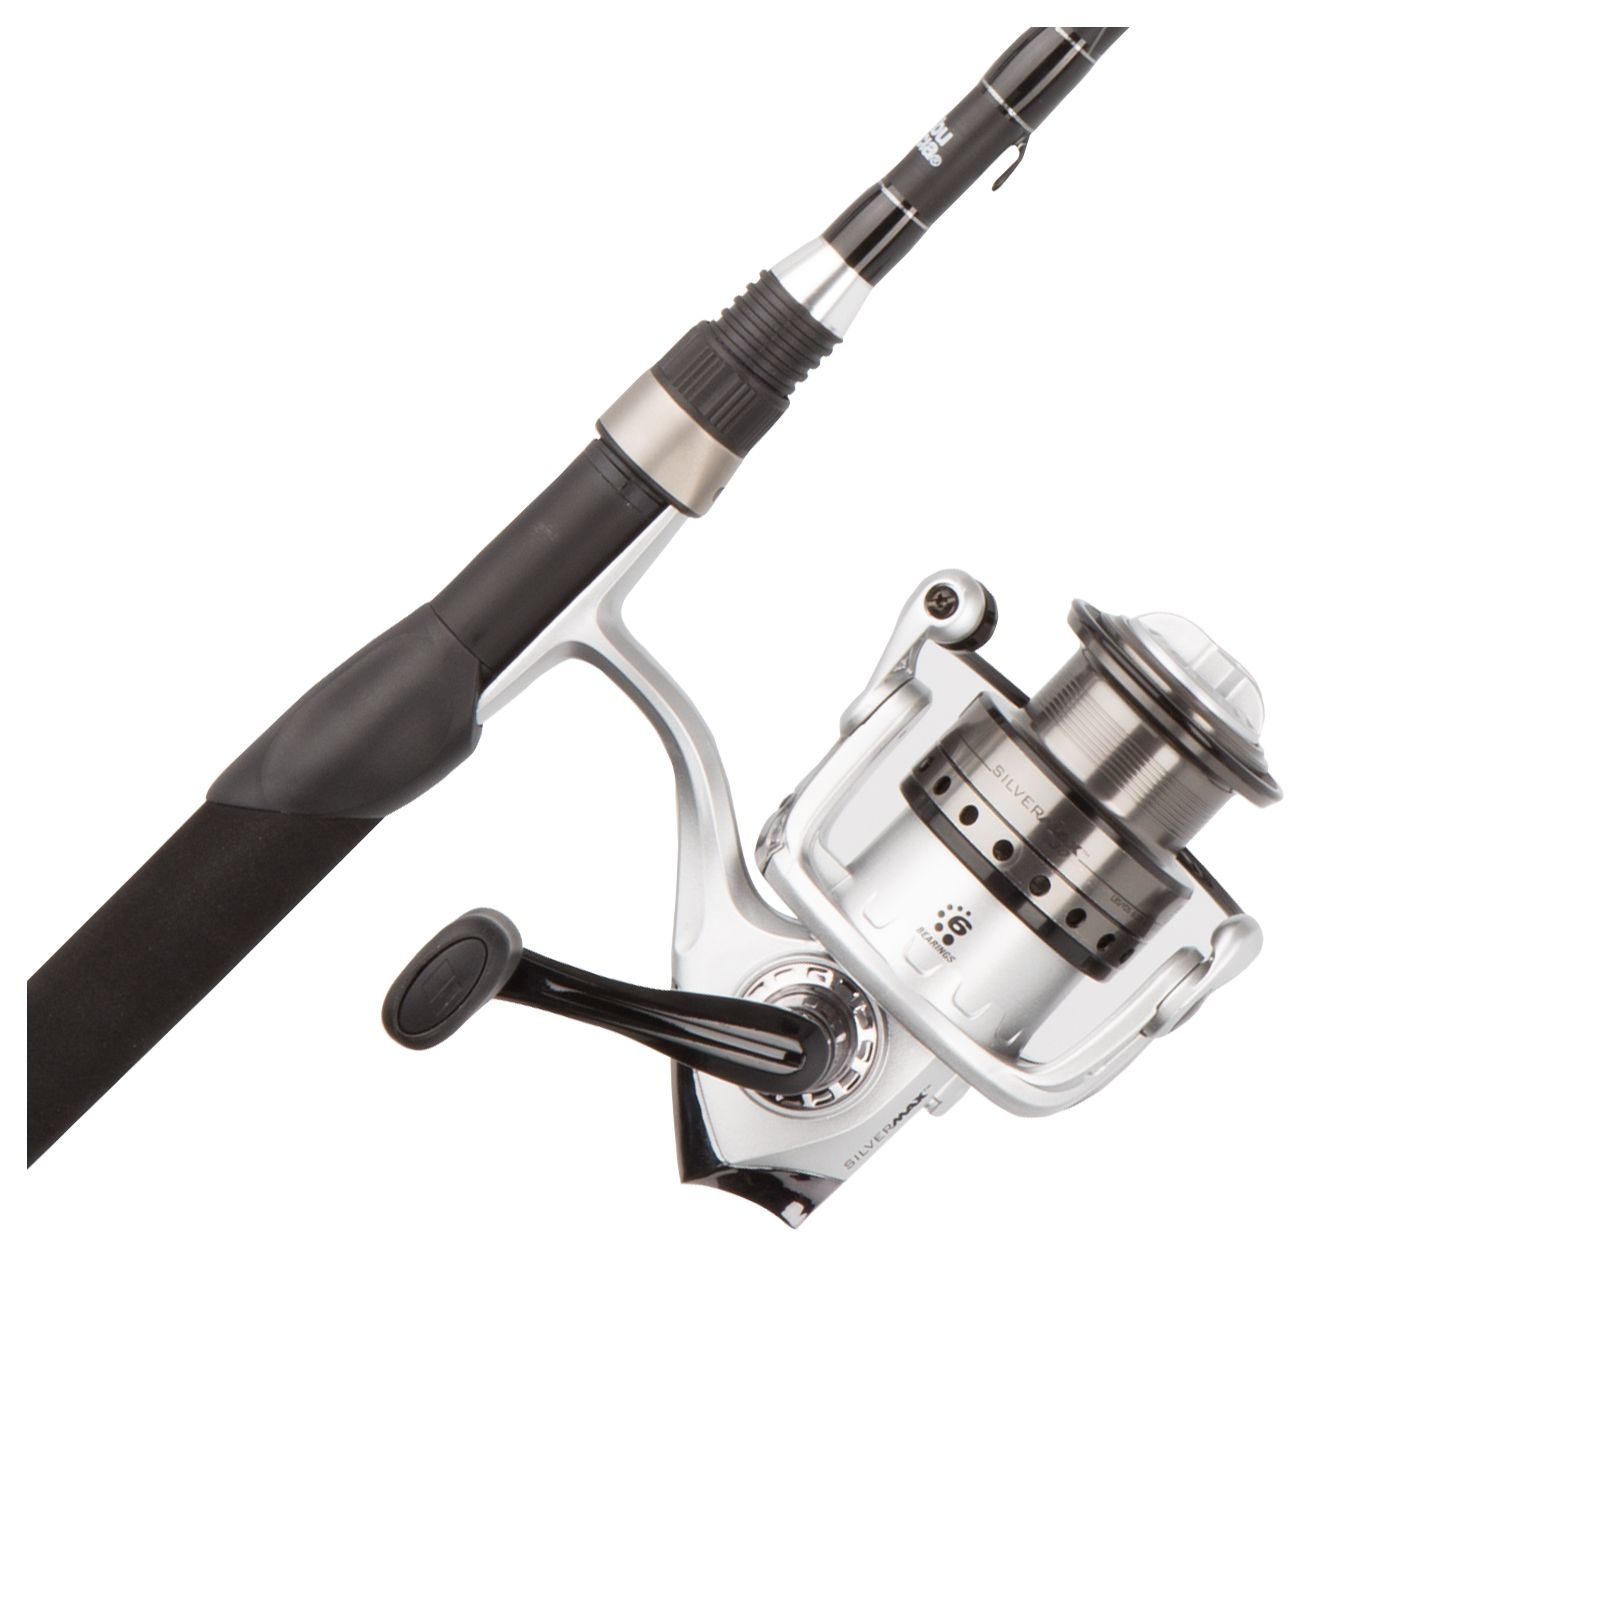 Abu Garcia Silver Max Spinning Combo